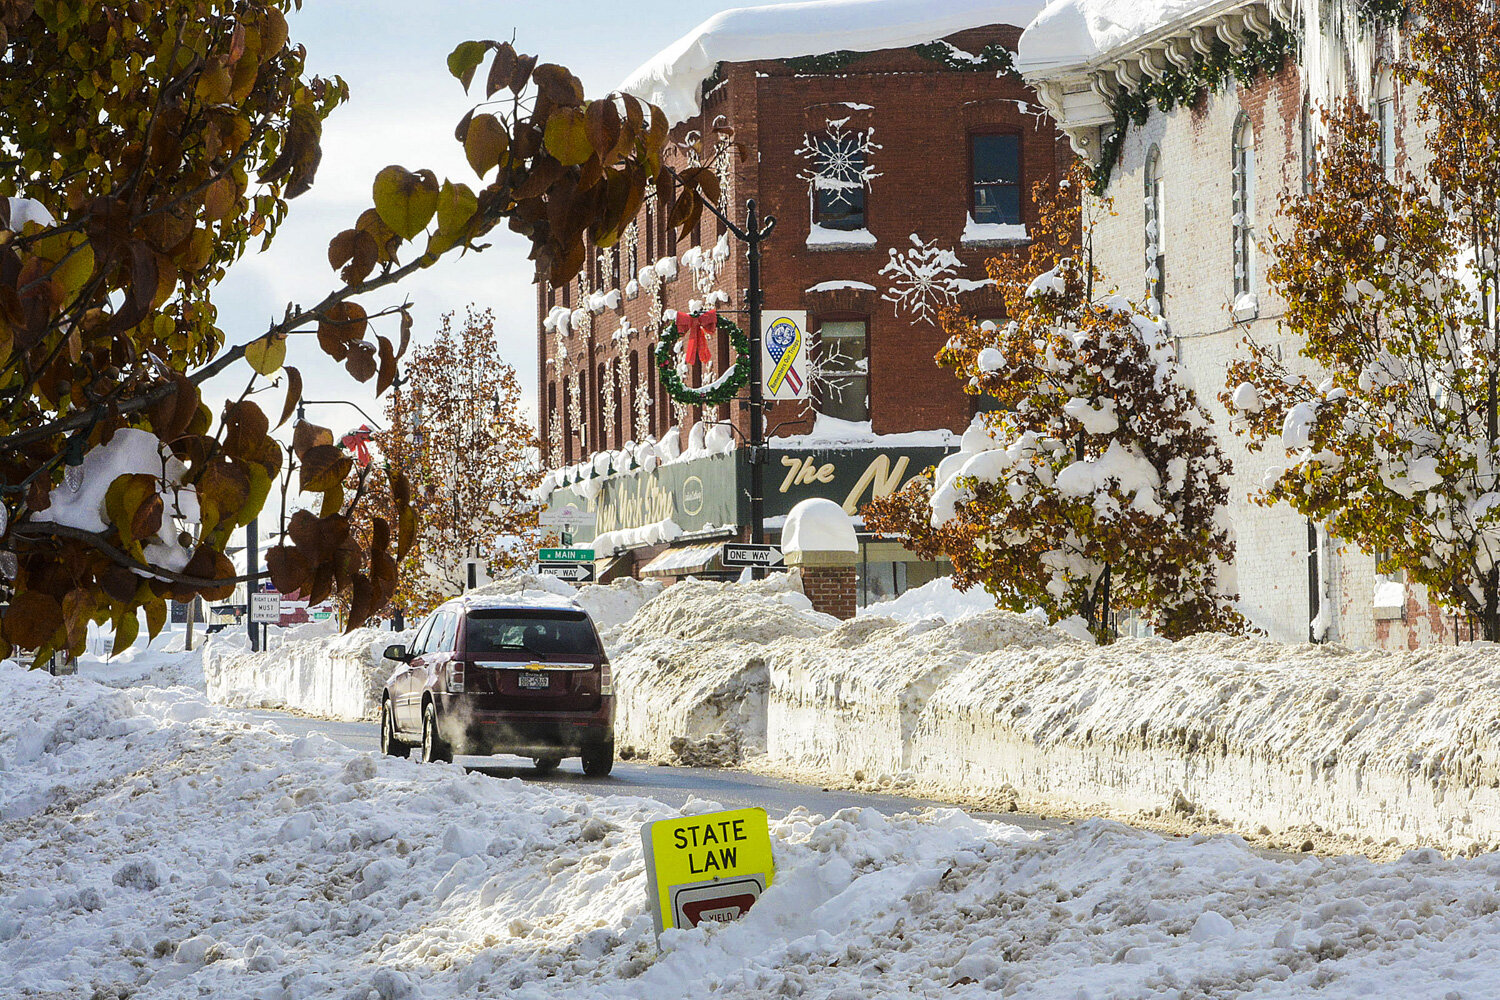 A trench four to five feet high is cut through Central Avenue in the Village of Lancaster. Friday is the first reprieve from the relentless storm that battered the area for four days.